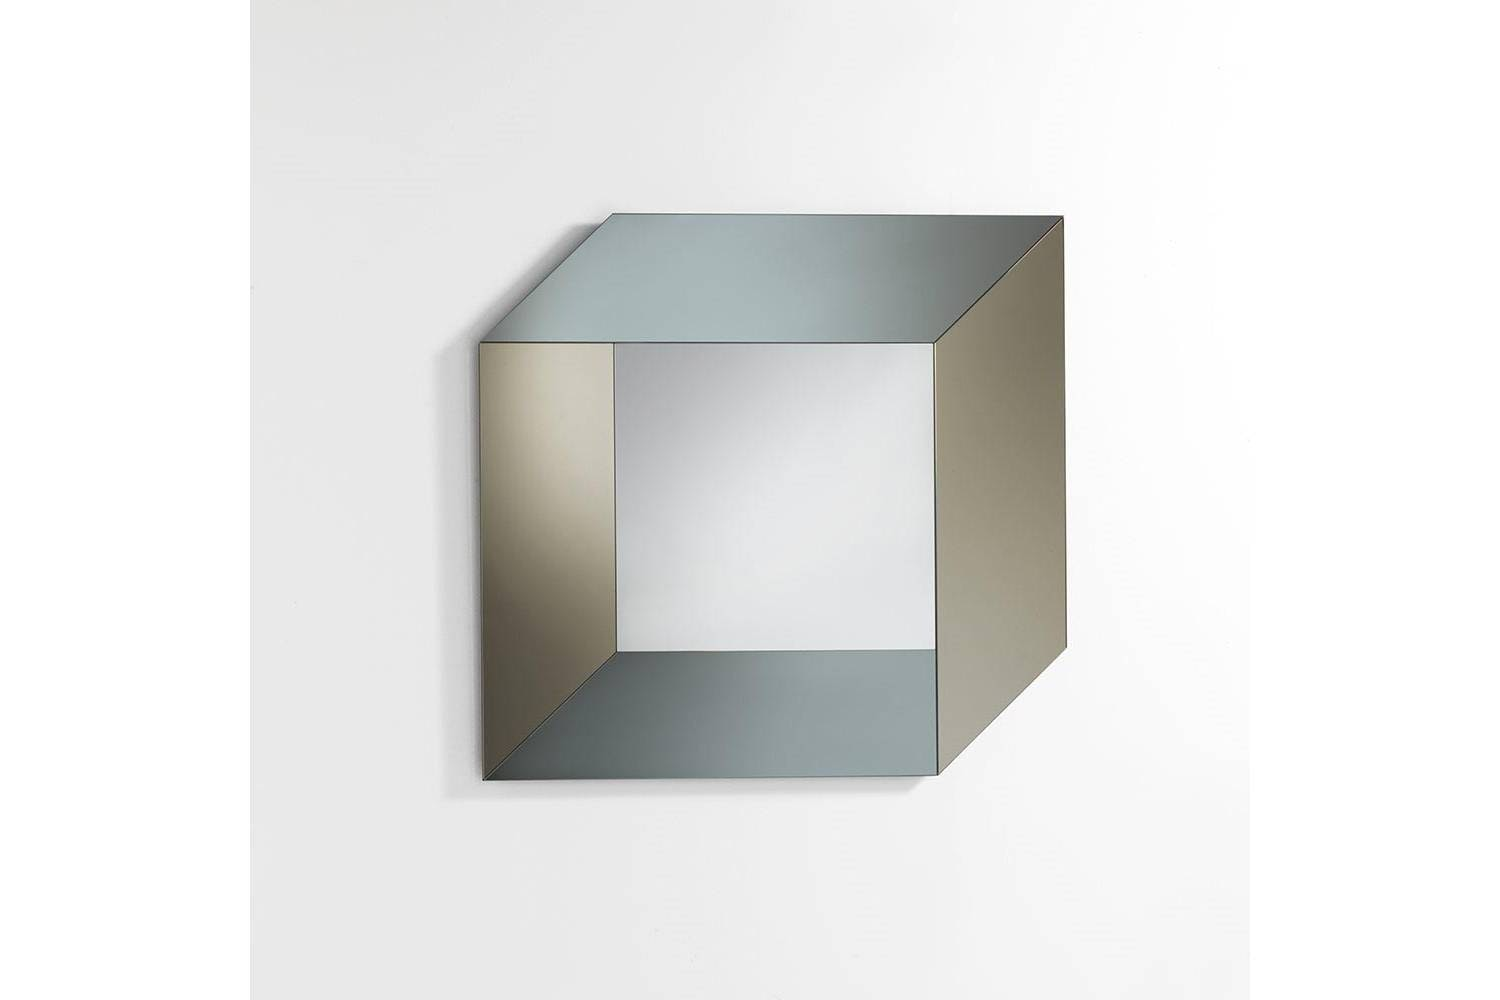 Escher Mirror by T. Colzani for Porada